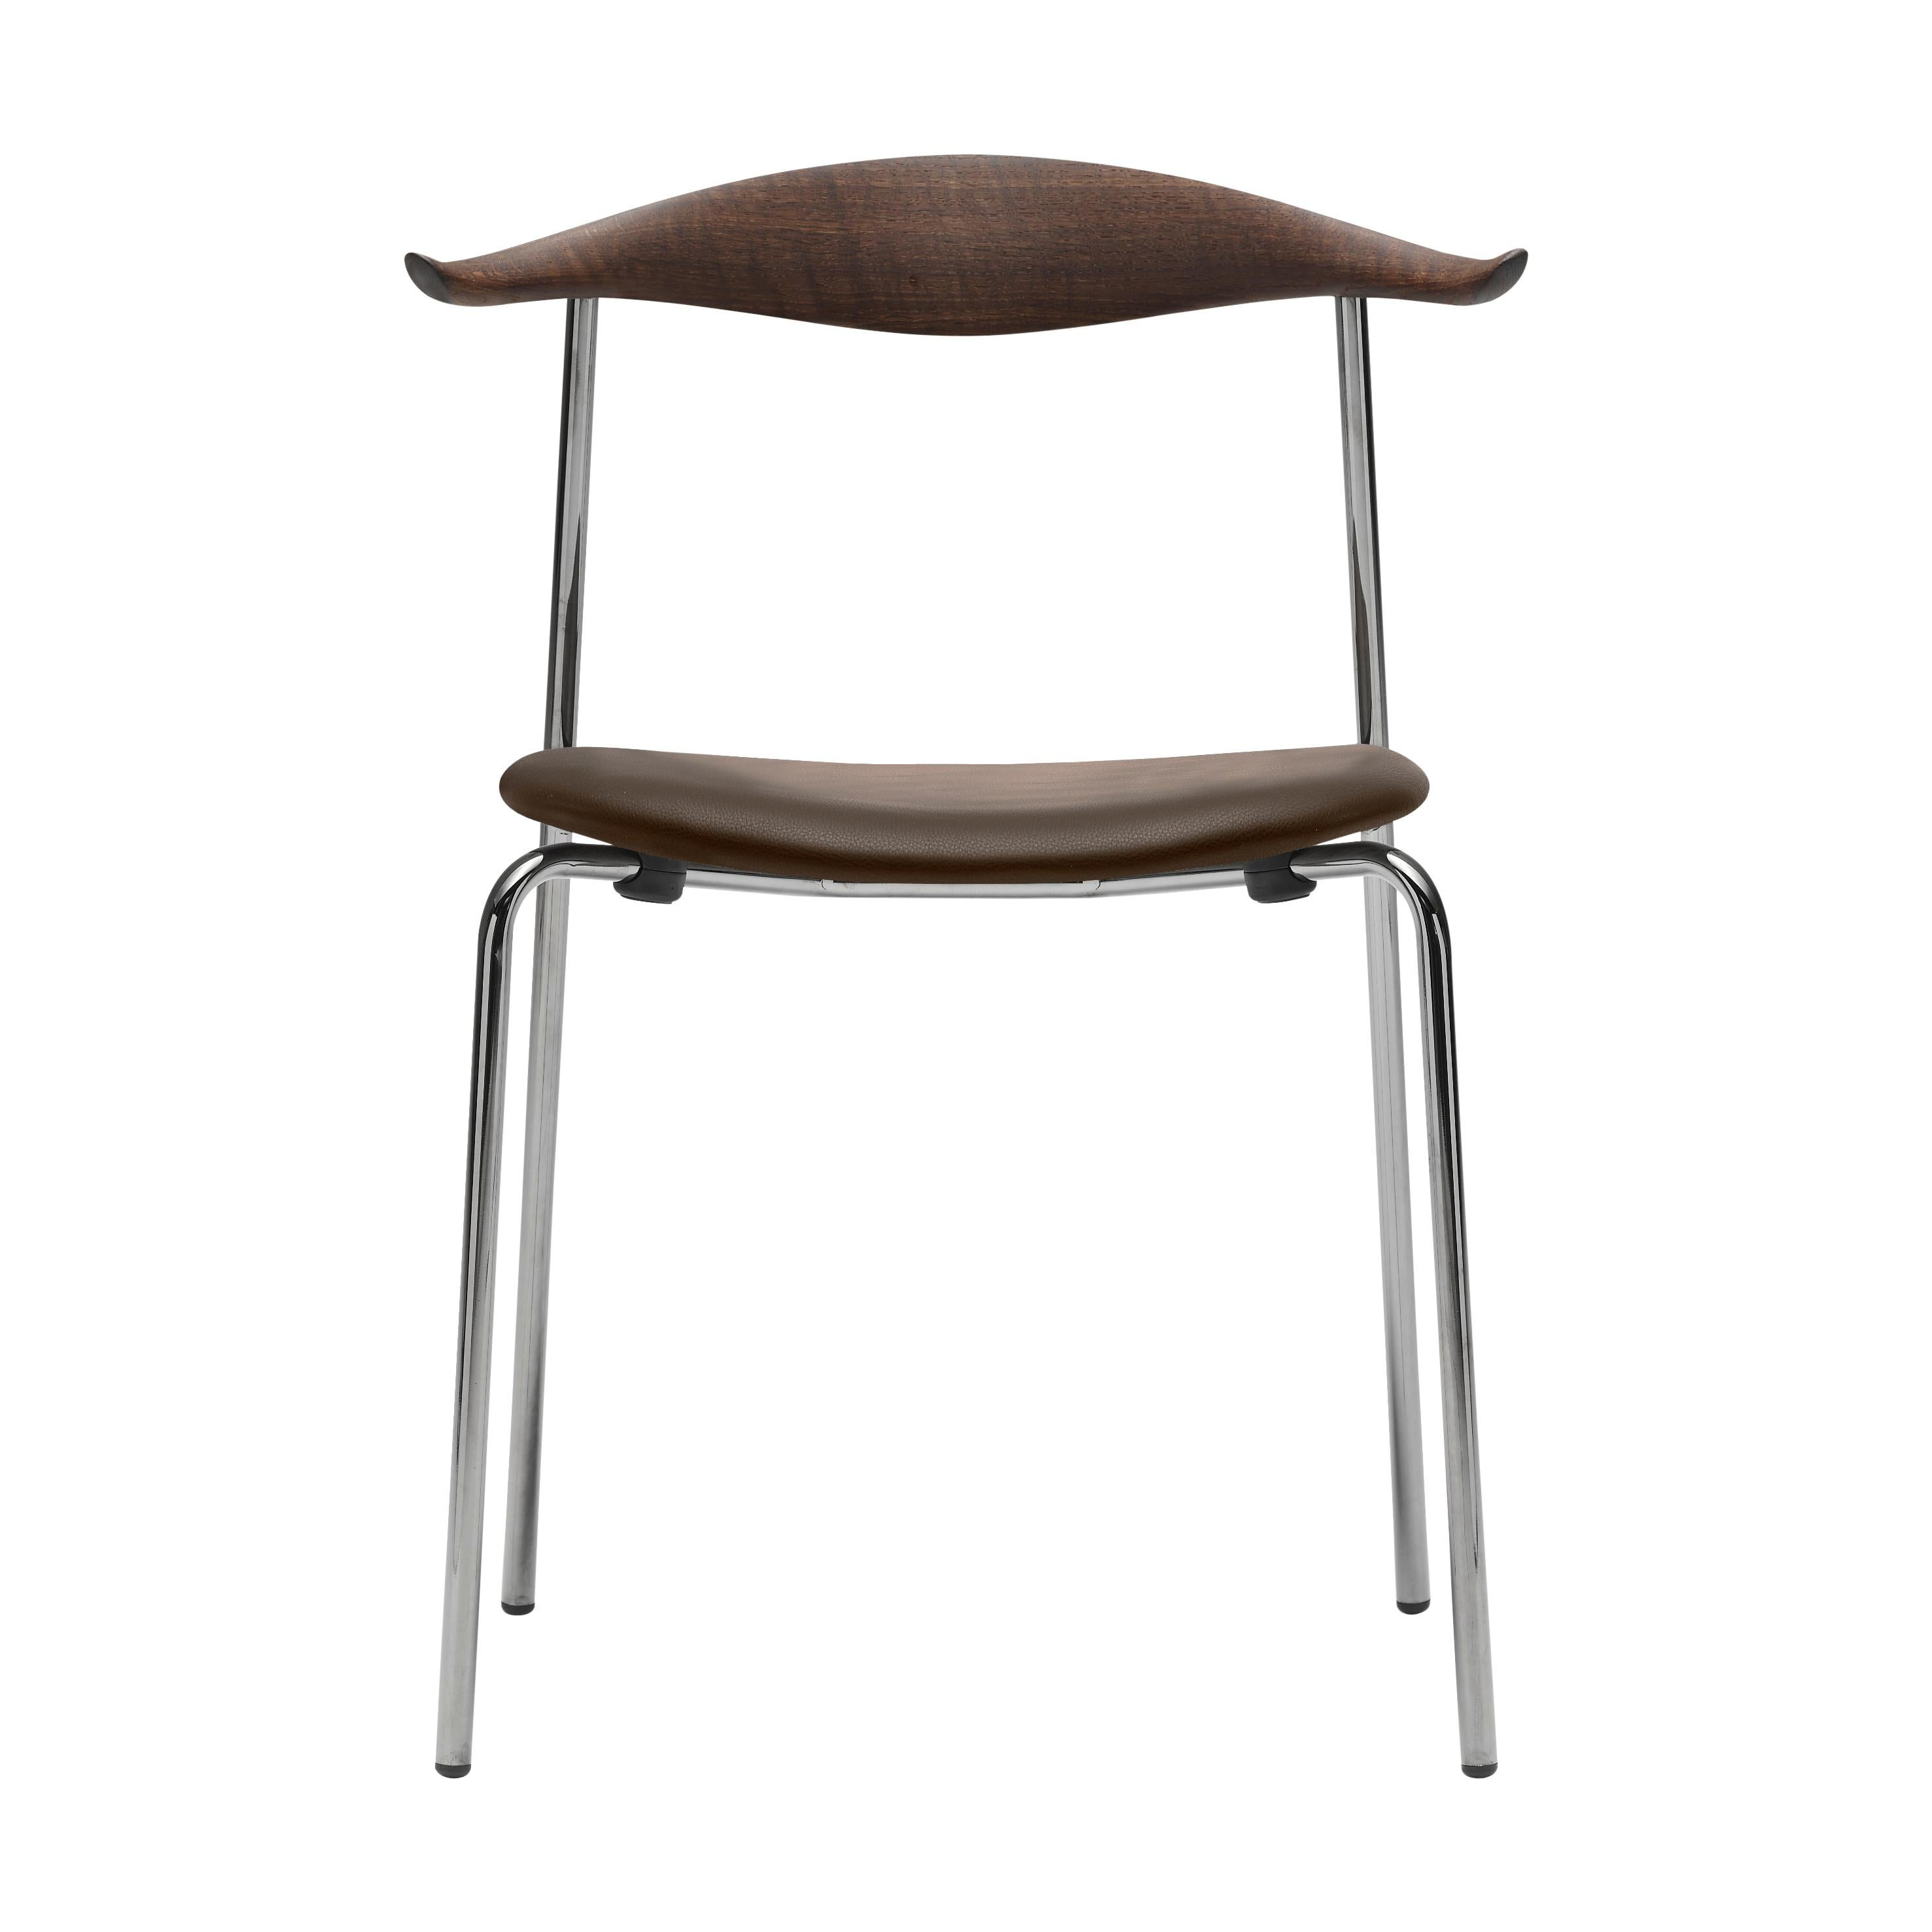 CH88P Dining Chair in Oak Smoked Stain with Steel Base by Hans J. Wegner